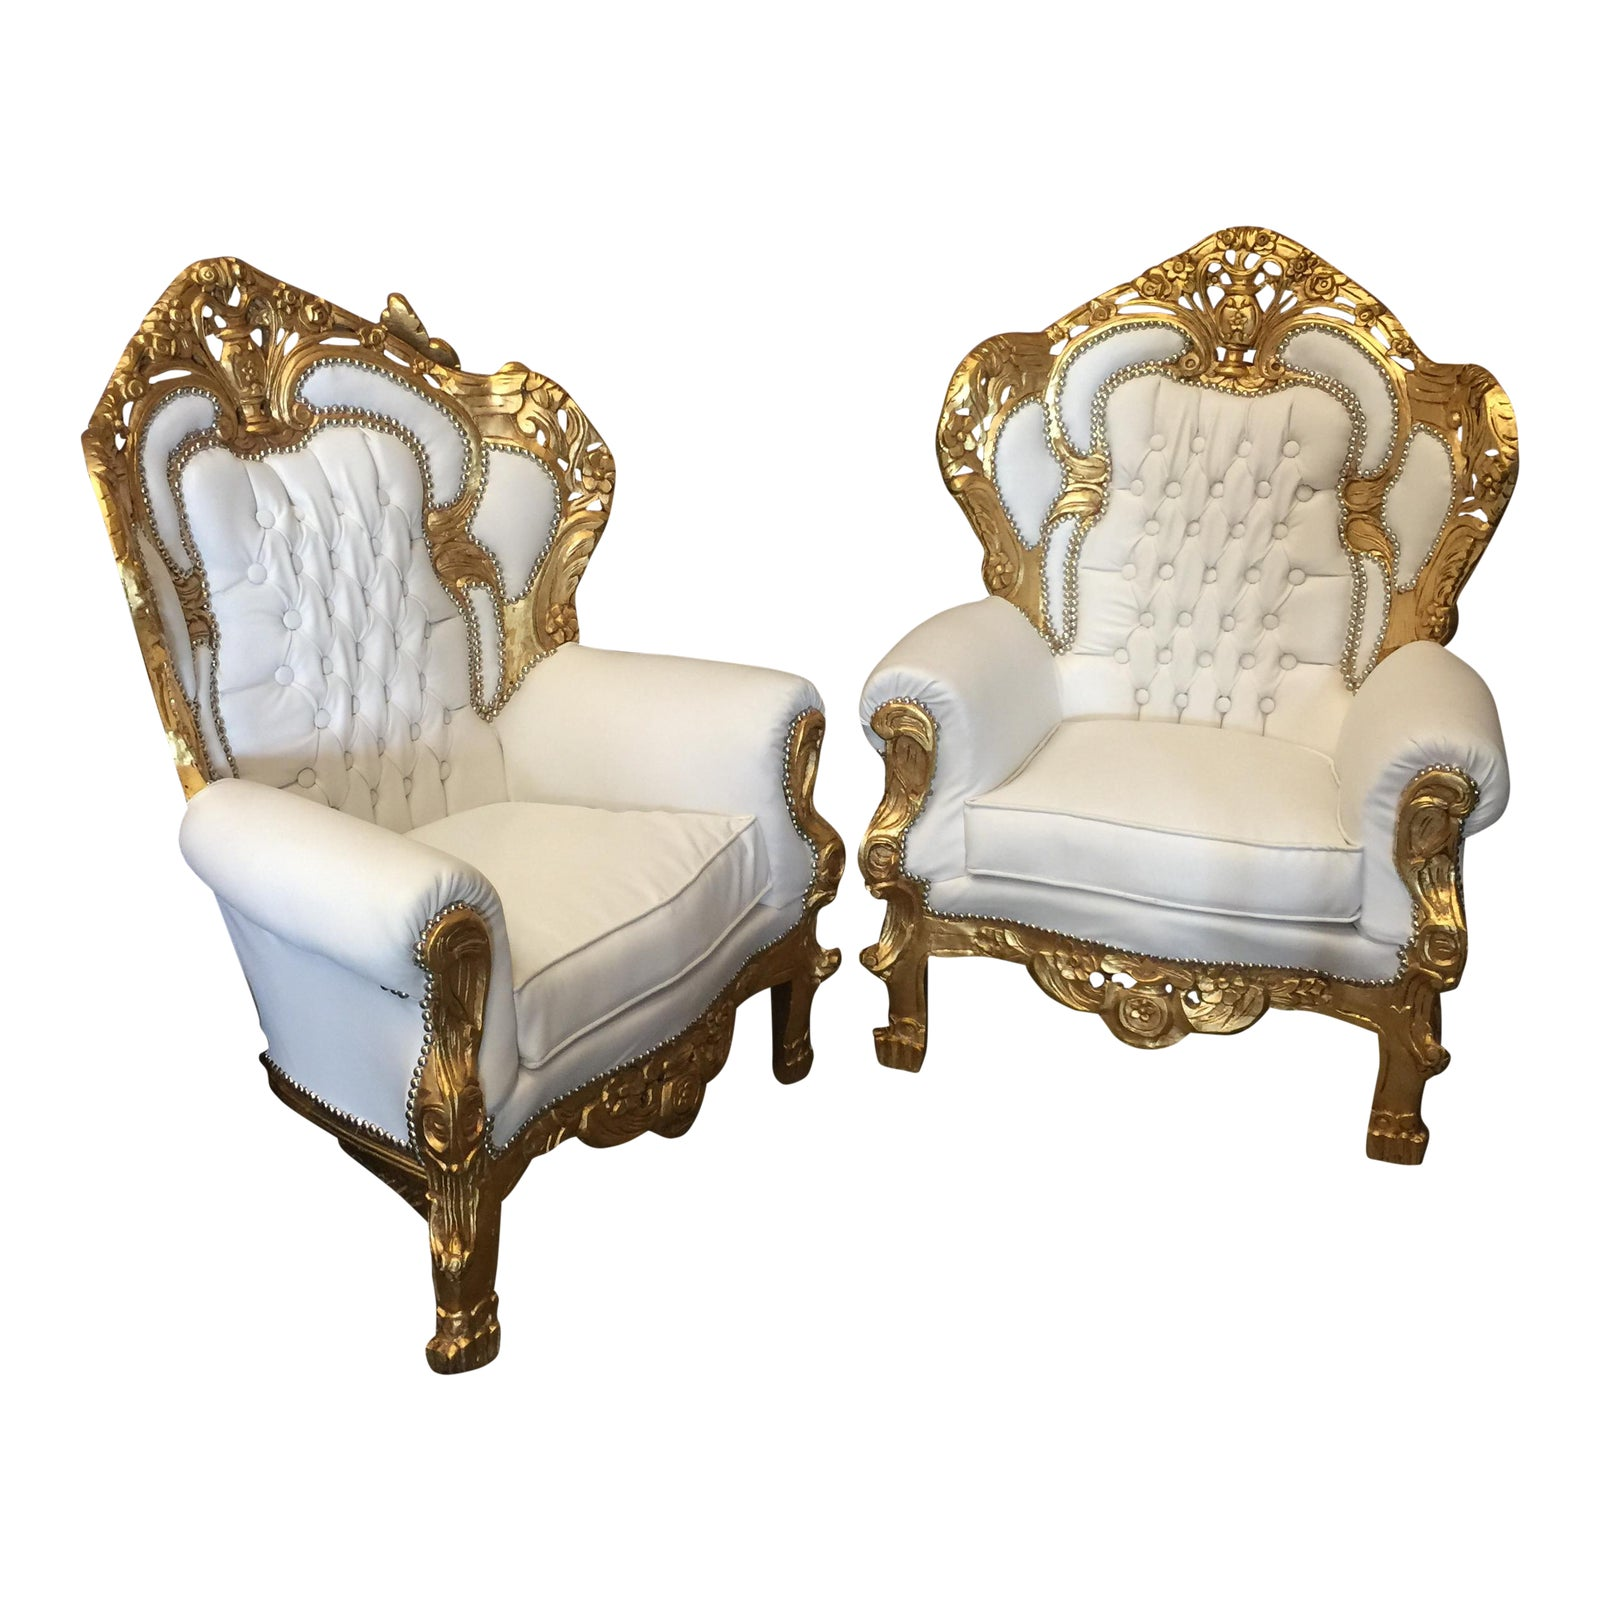 White Leather Tufted Throne Chairs A Pair Chairish